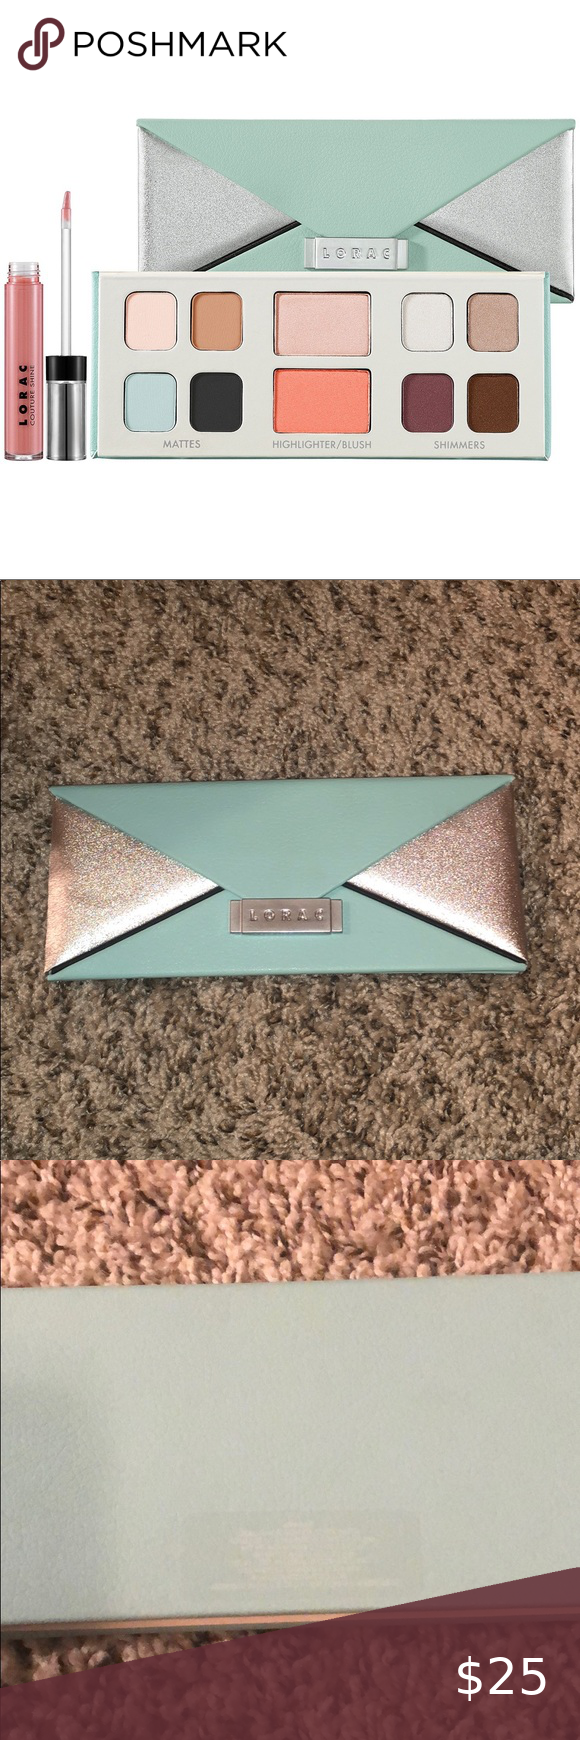 LORAC Mint Edition Eye & Cheek Palette New This palette is brand new but does n#design #model #dress #shoes #heels #styles #outfit #purse #jewelry #shopping #glam #love #amazing #style #swag